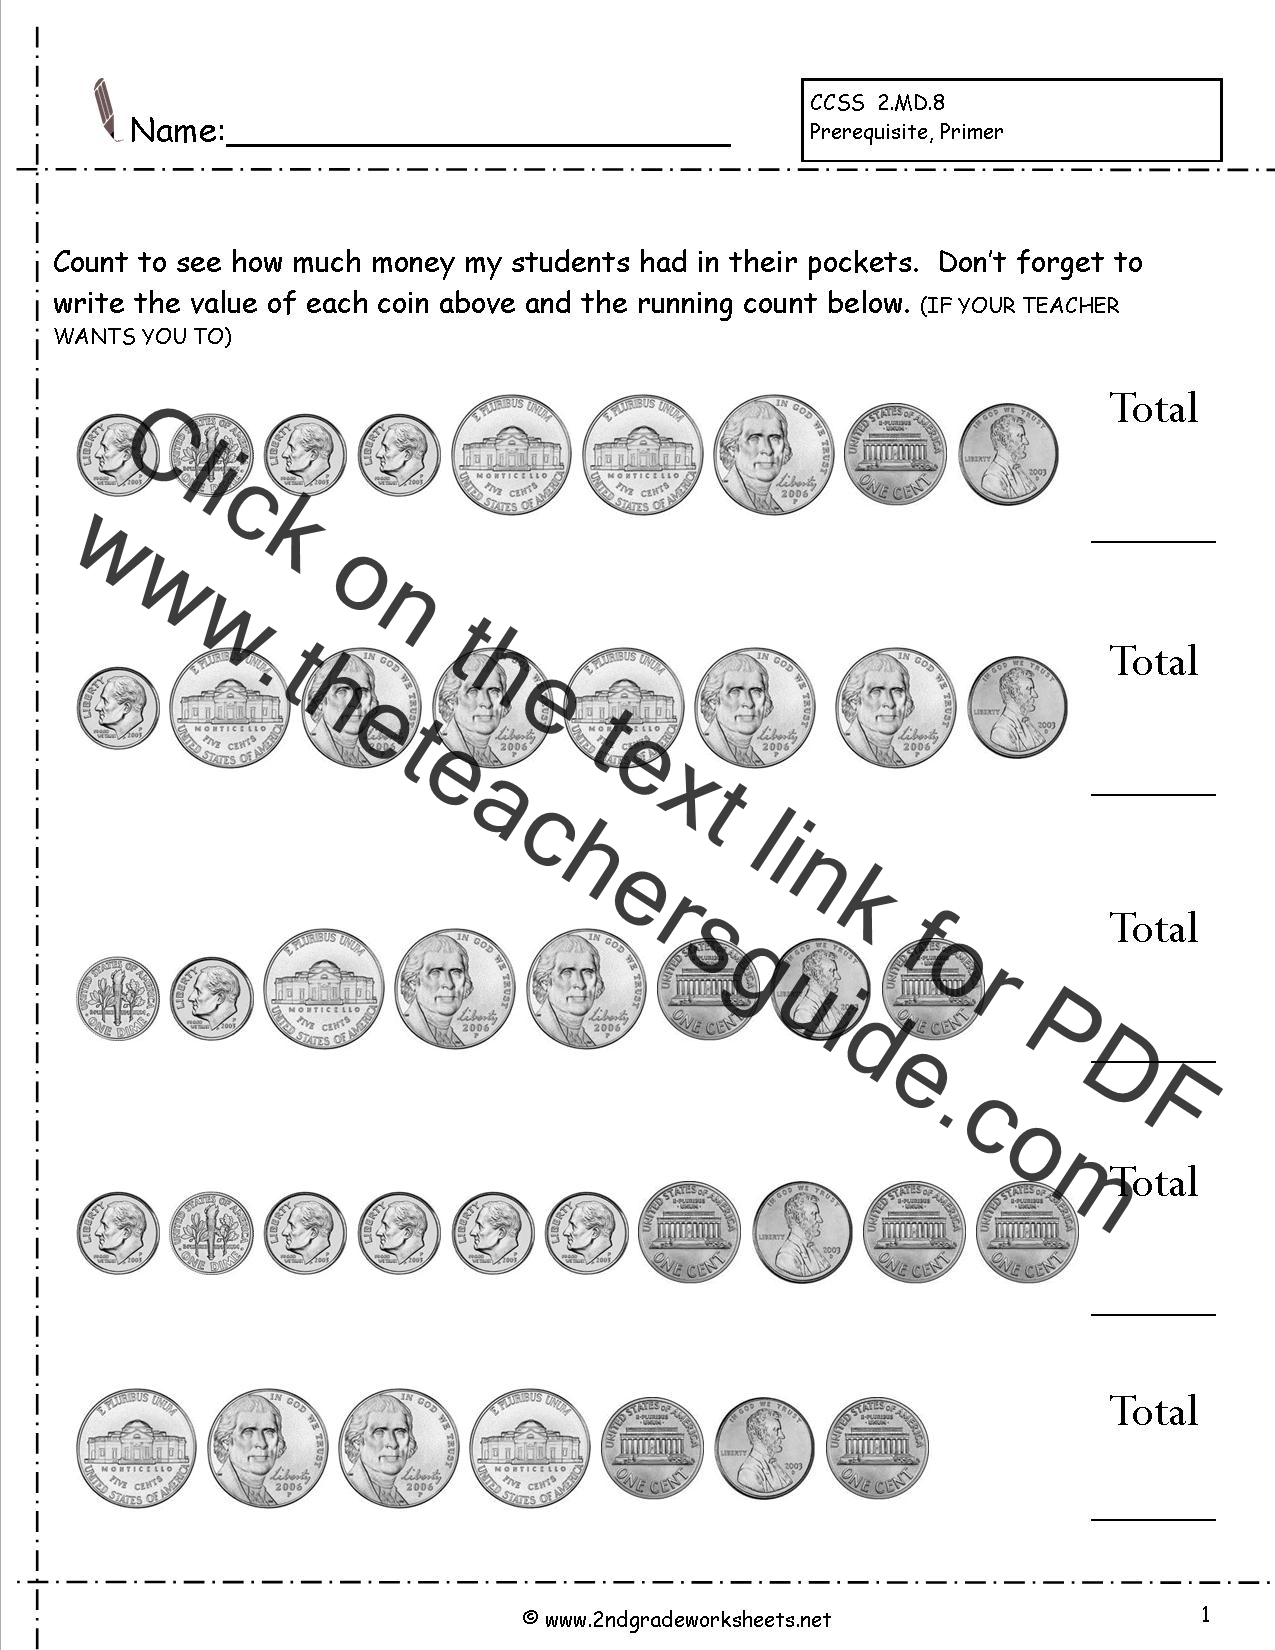 Worksheets Free Money Counting Worksheets counting coins and money worksheets printouts worksheet